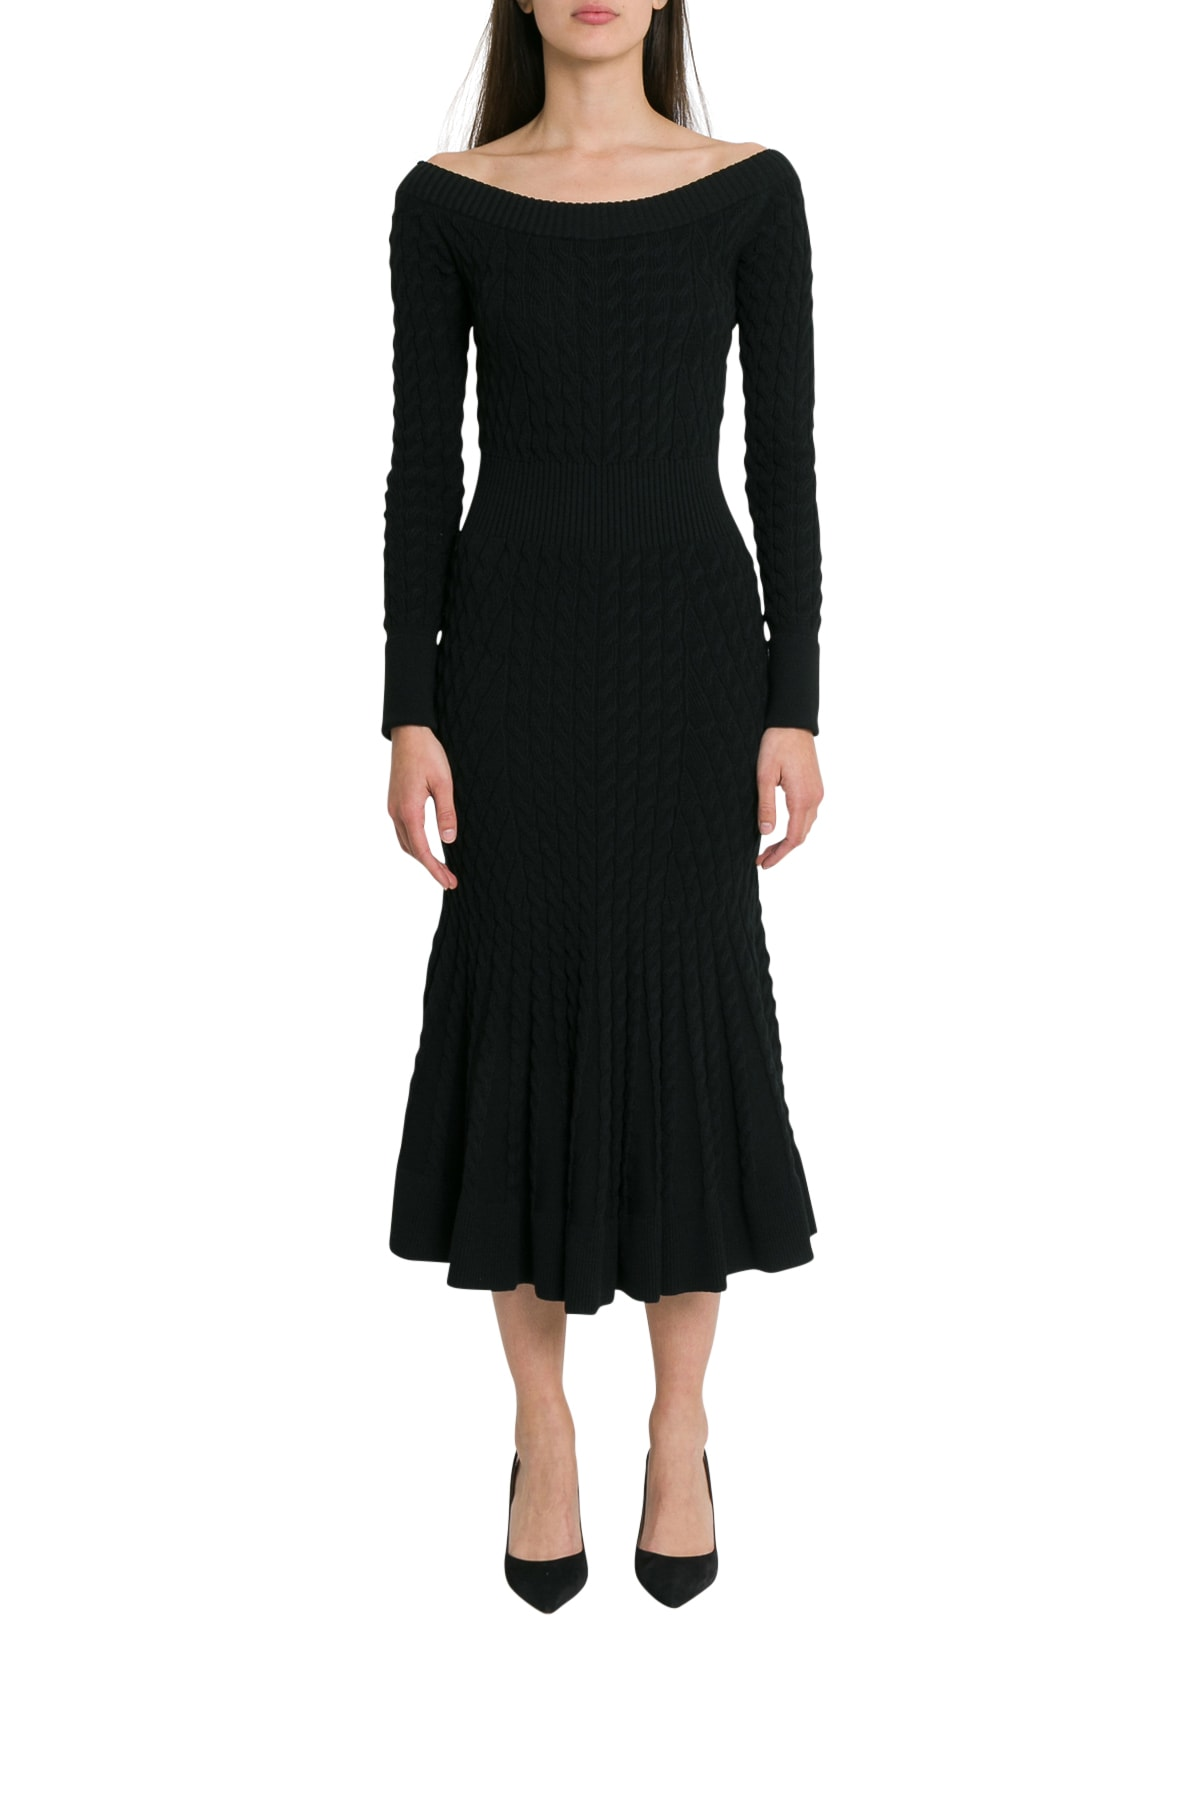 Photo of  Alexander McQueen Cablestitching Knitted Dress With Flared Bottom- shop Alexander McQueen  online sales